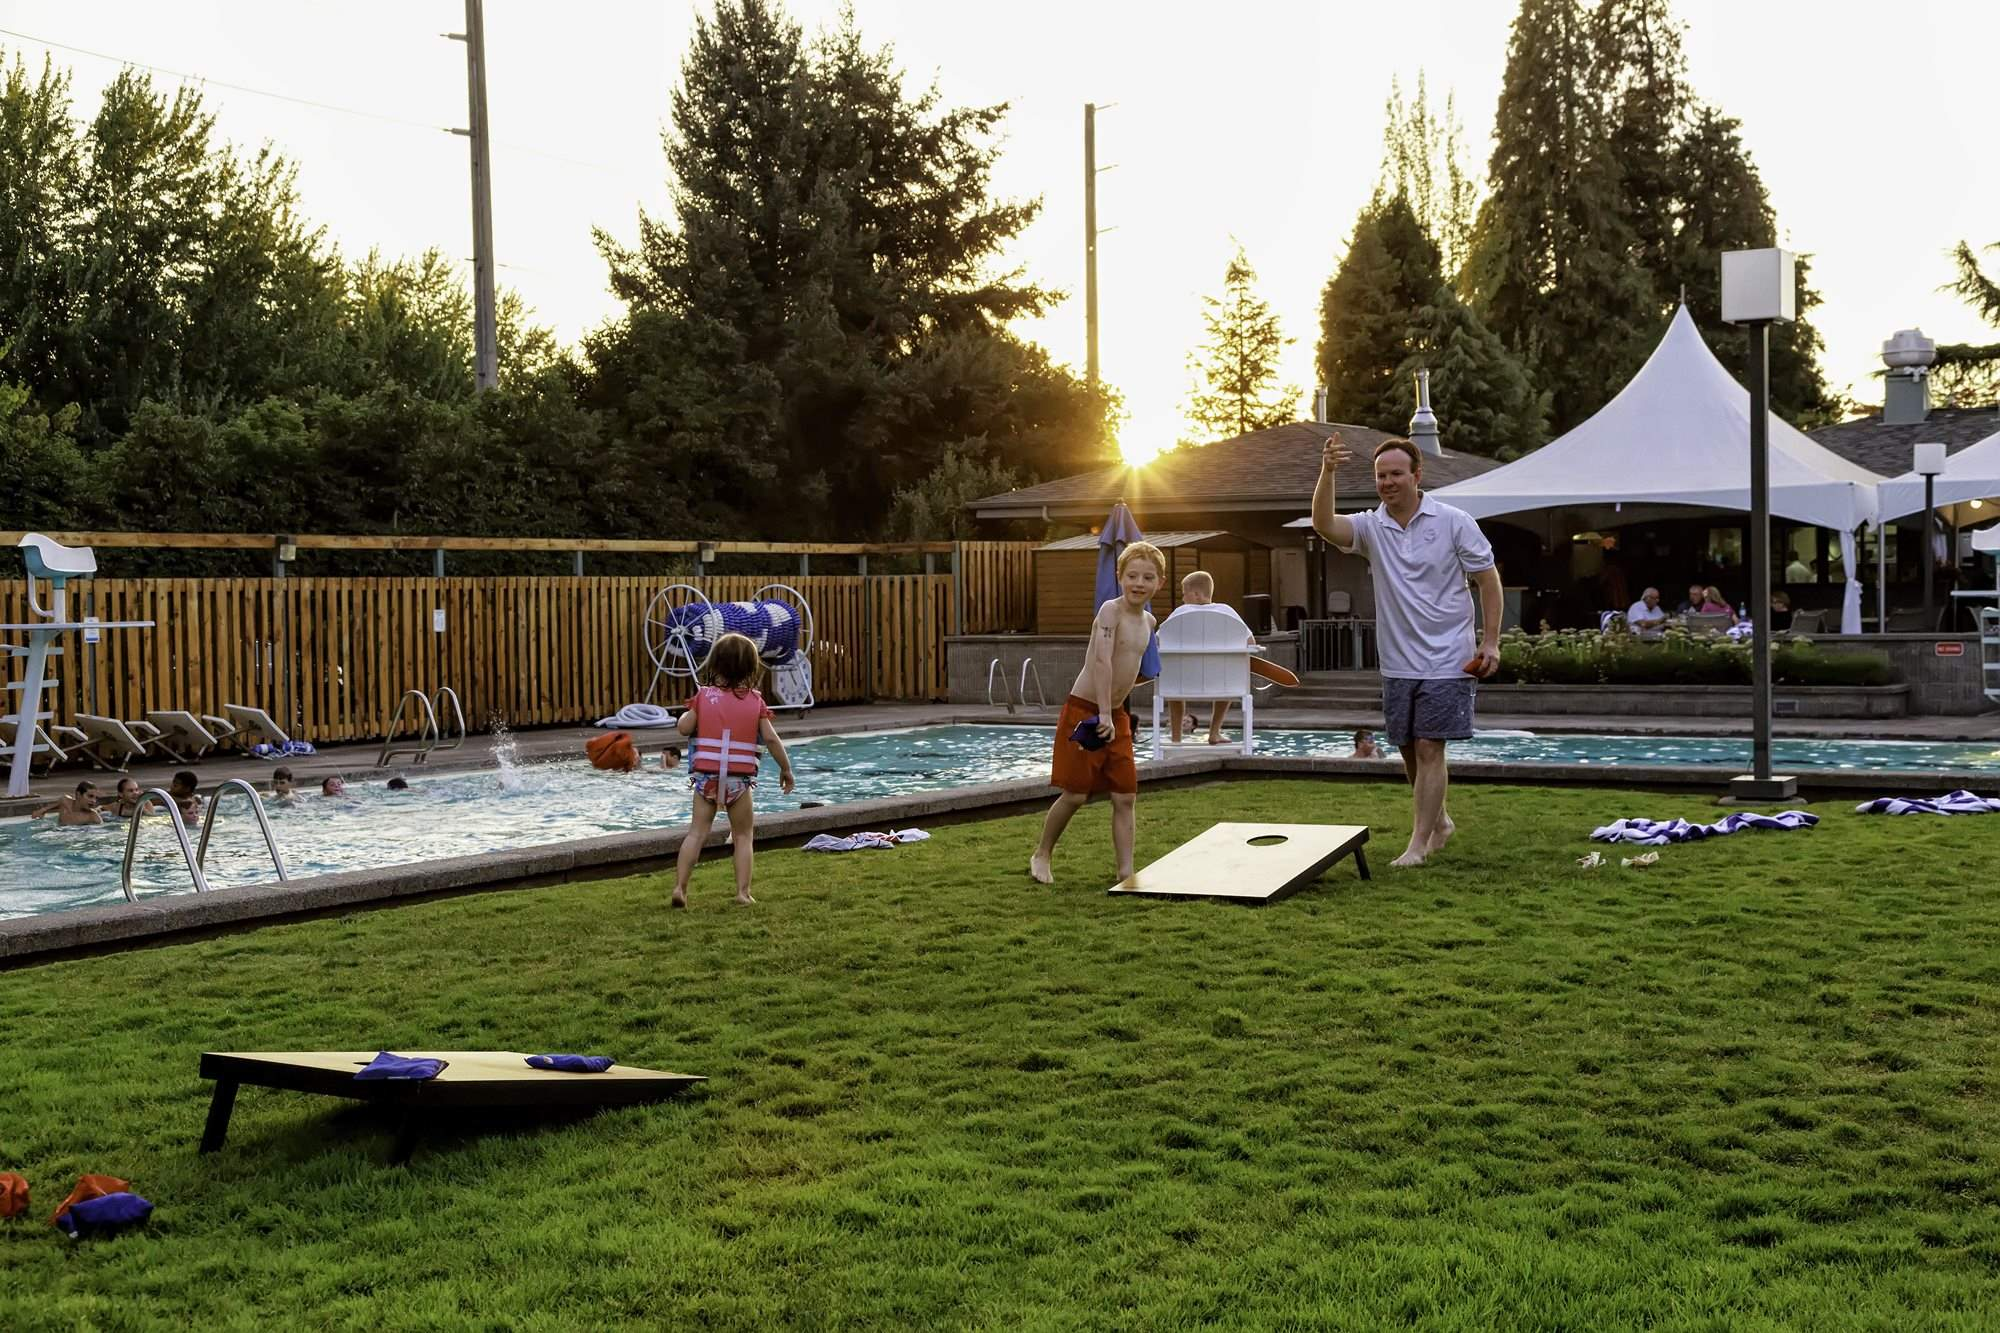 Eugene_Country_Club_-_Corn_Hole_(2)